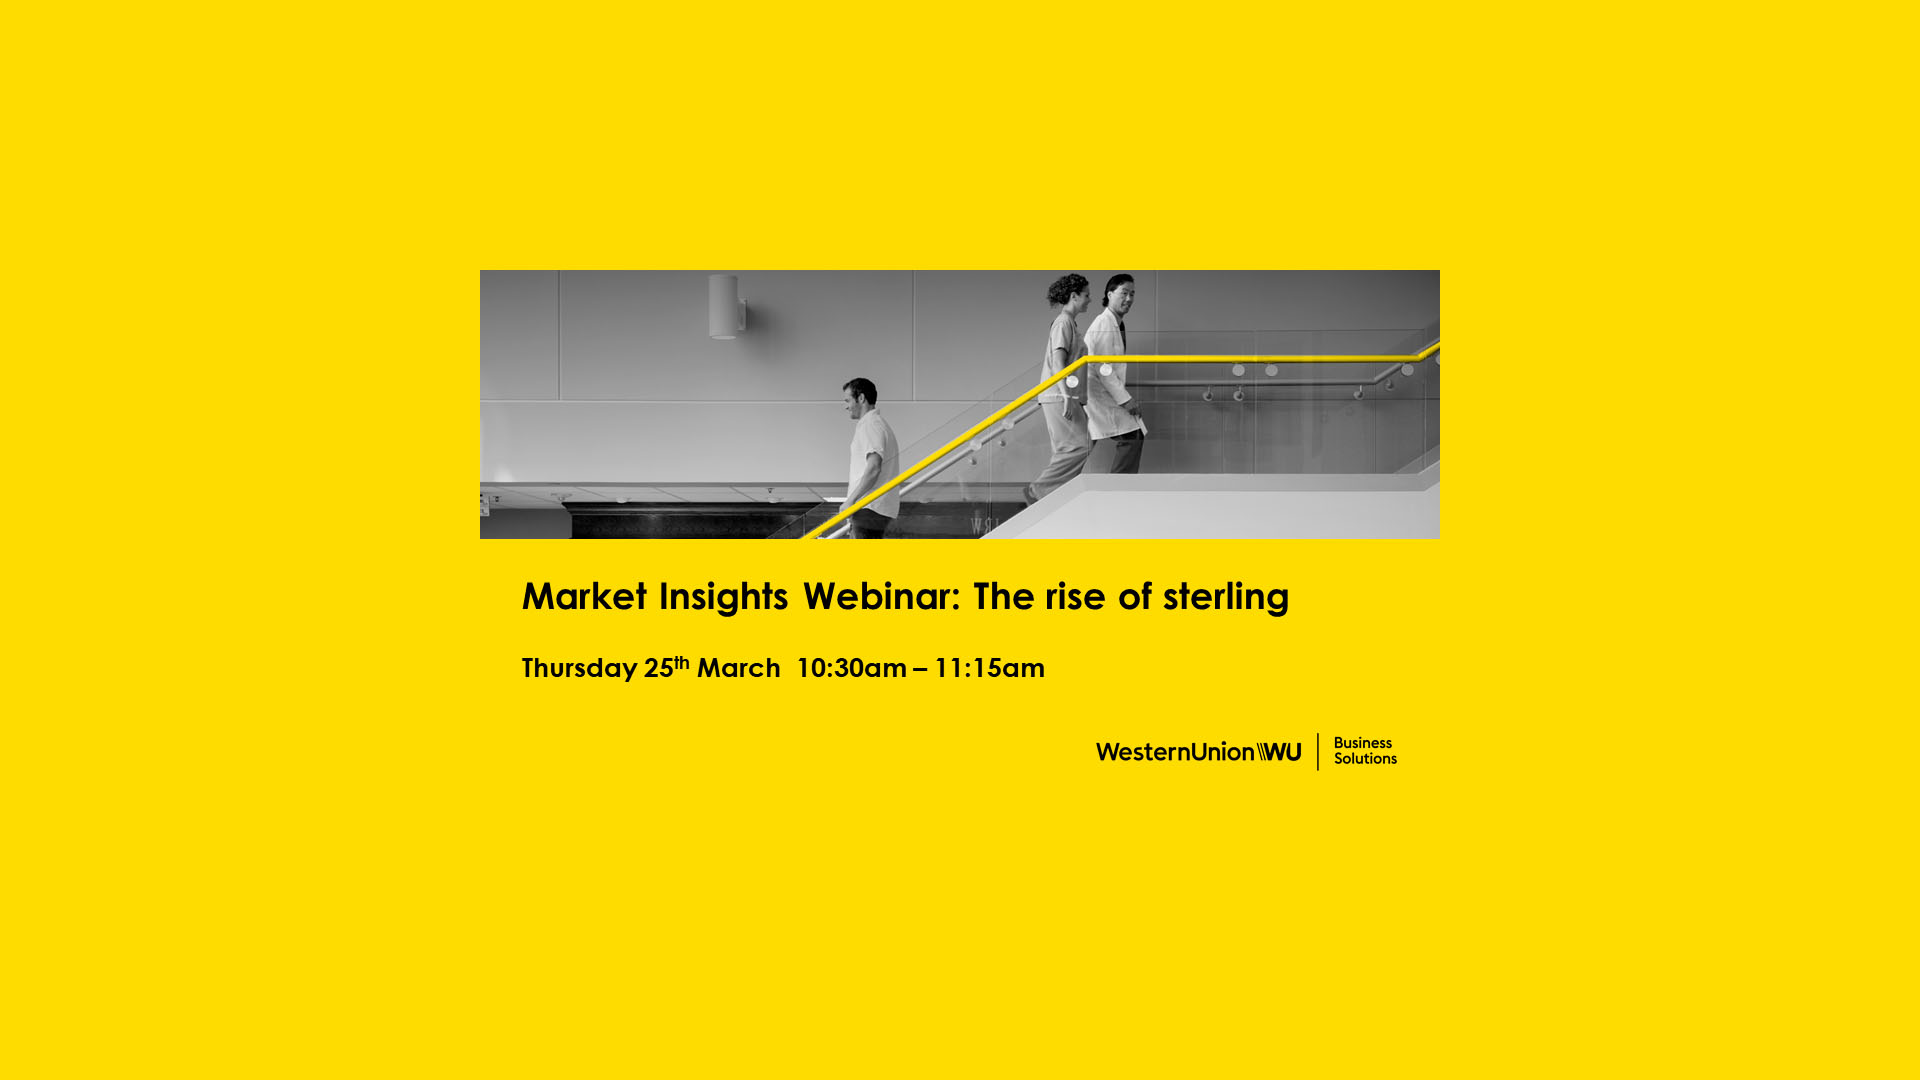 Market Insights Webinar: The Rise of Sterling